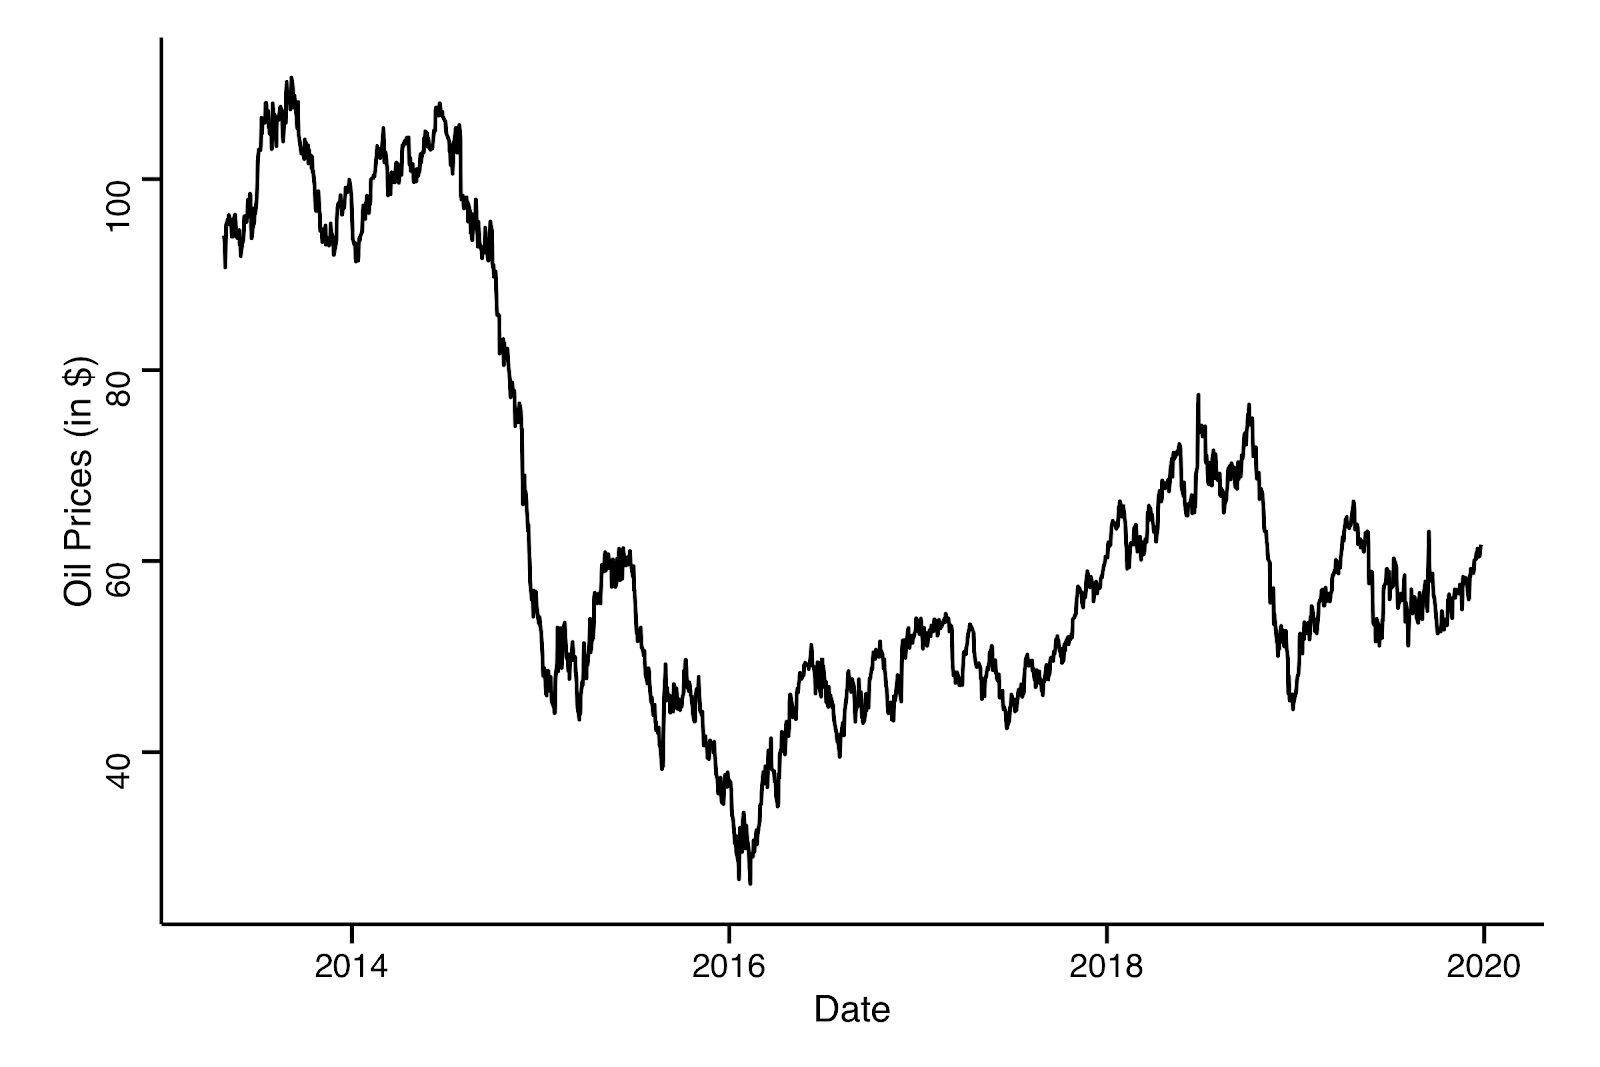 Figure 5: WTI Oil Prices from April 2013 until Dec. 25, 2019